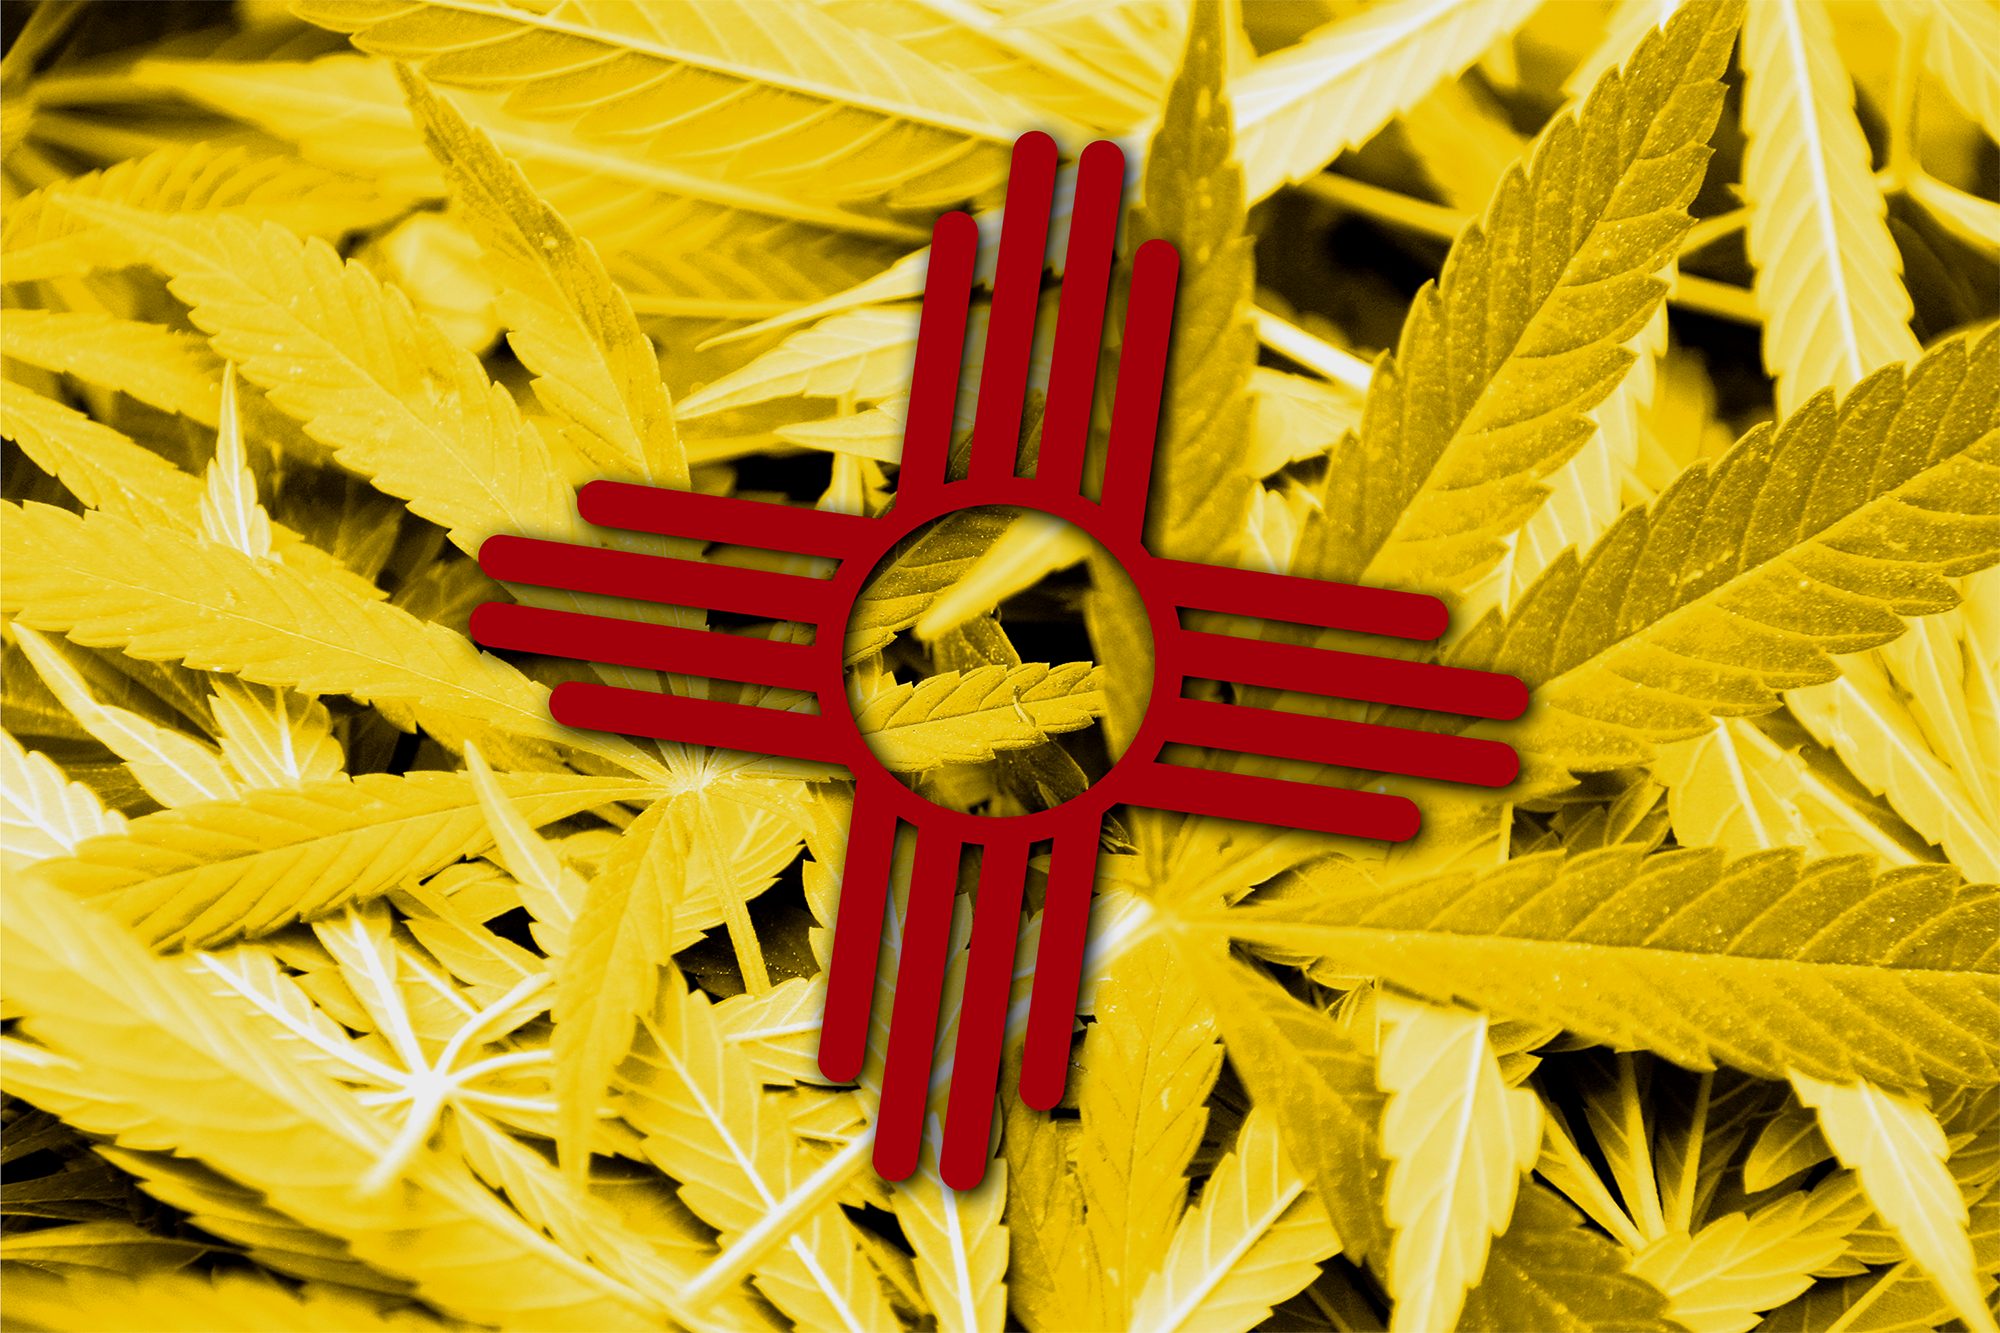 New Mexico Lawmakers Considering Marijuana Legalization